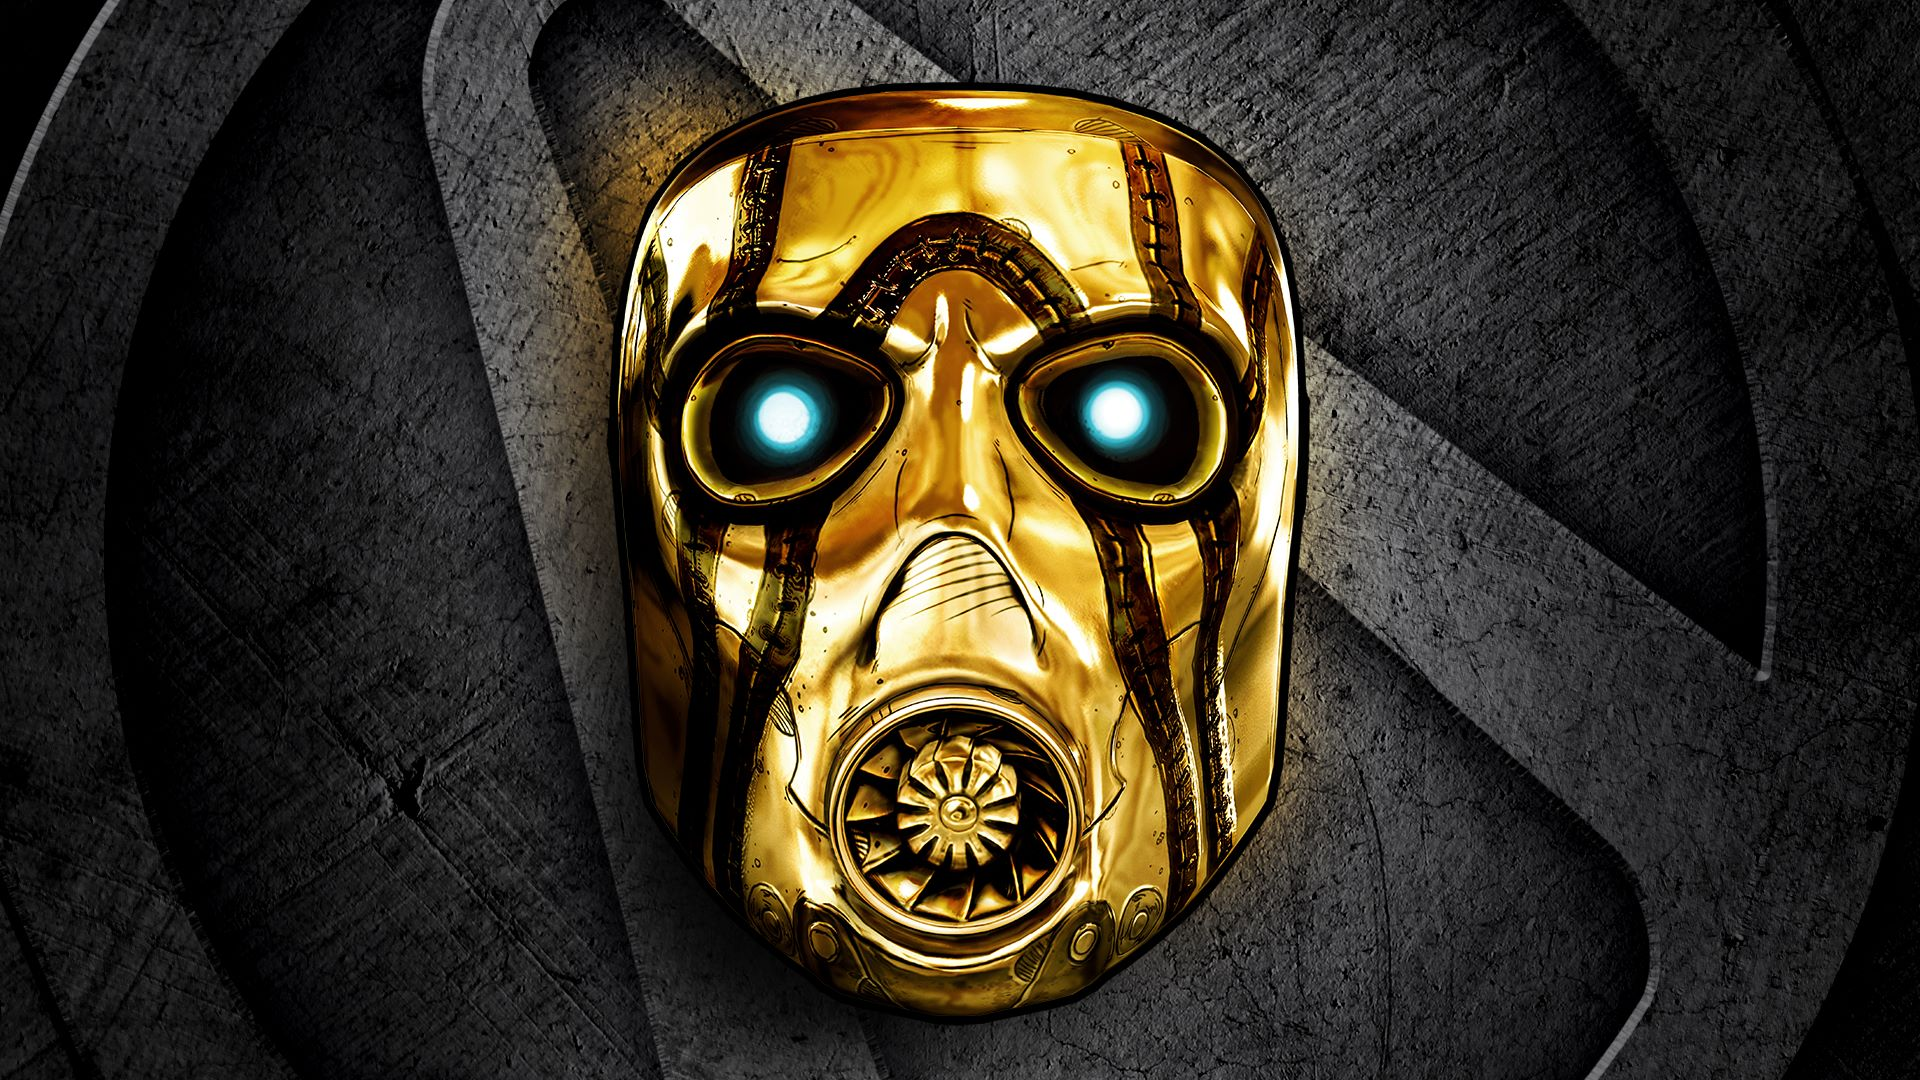 709e87c5ec0 Buy Borderlands  The Handsome Collection - Microsoft Store xh-ZA